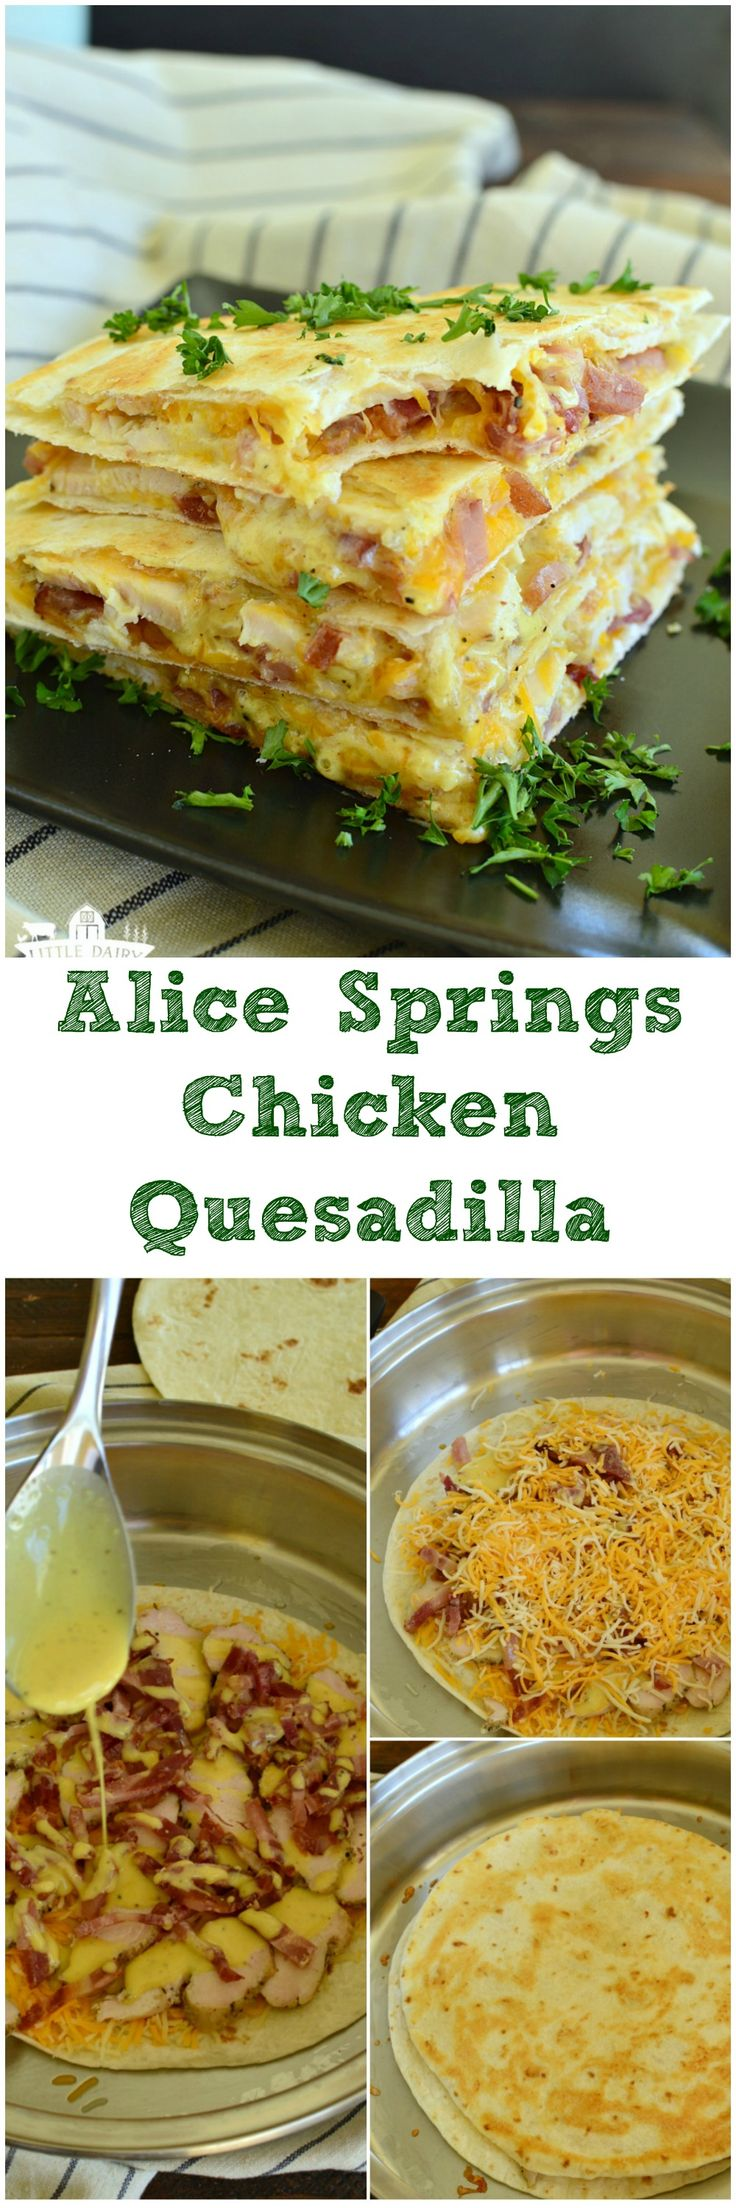 Leftover grilled chicken? Slice it up and create and Alice Springs Chicken Quesadilla out of it! Can't resist the gooey cheese or the bacon either! #easylunch www.littledairyontheprairie.com